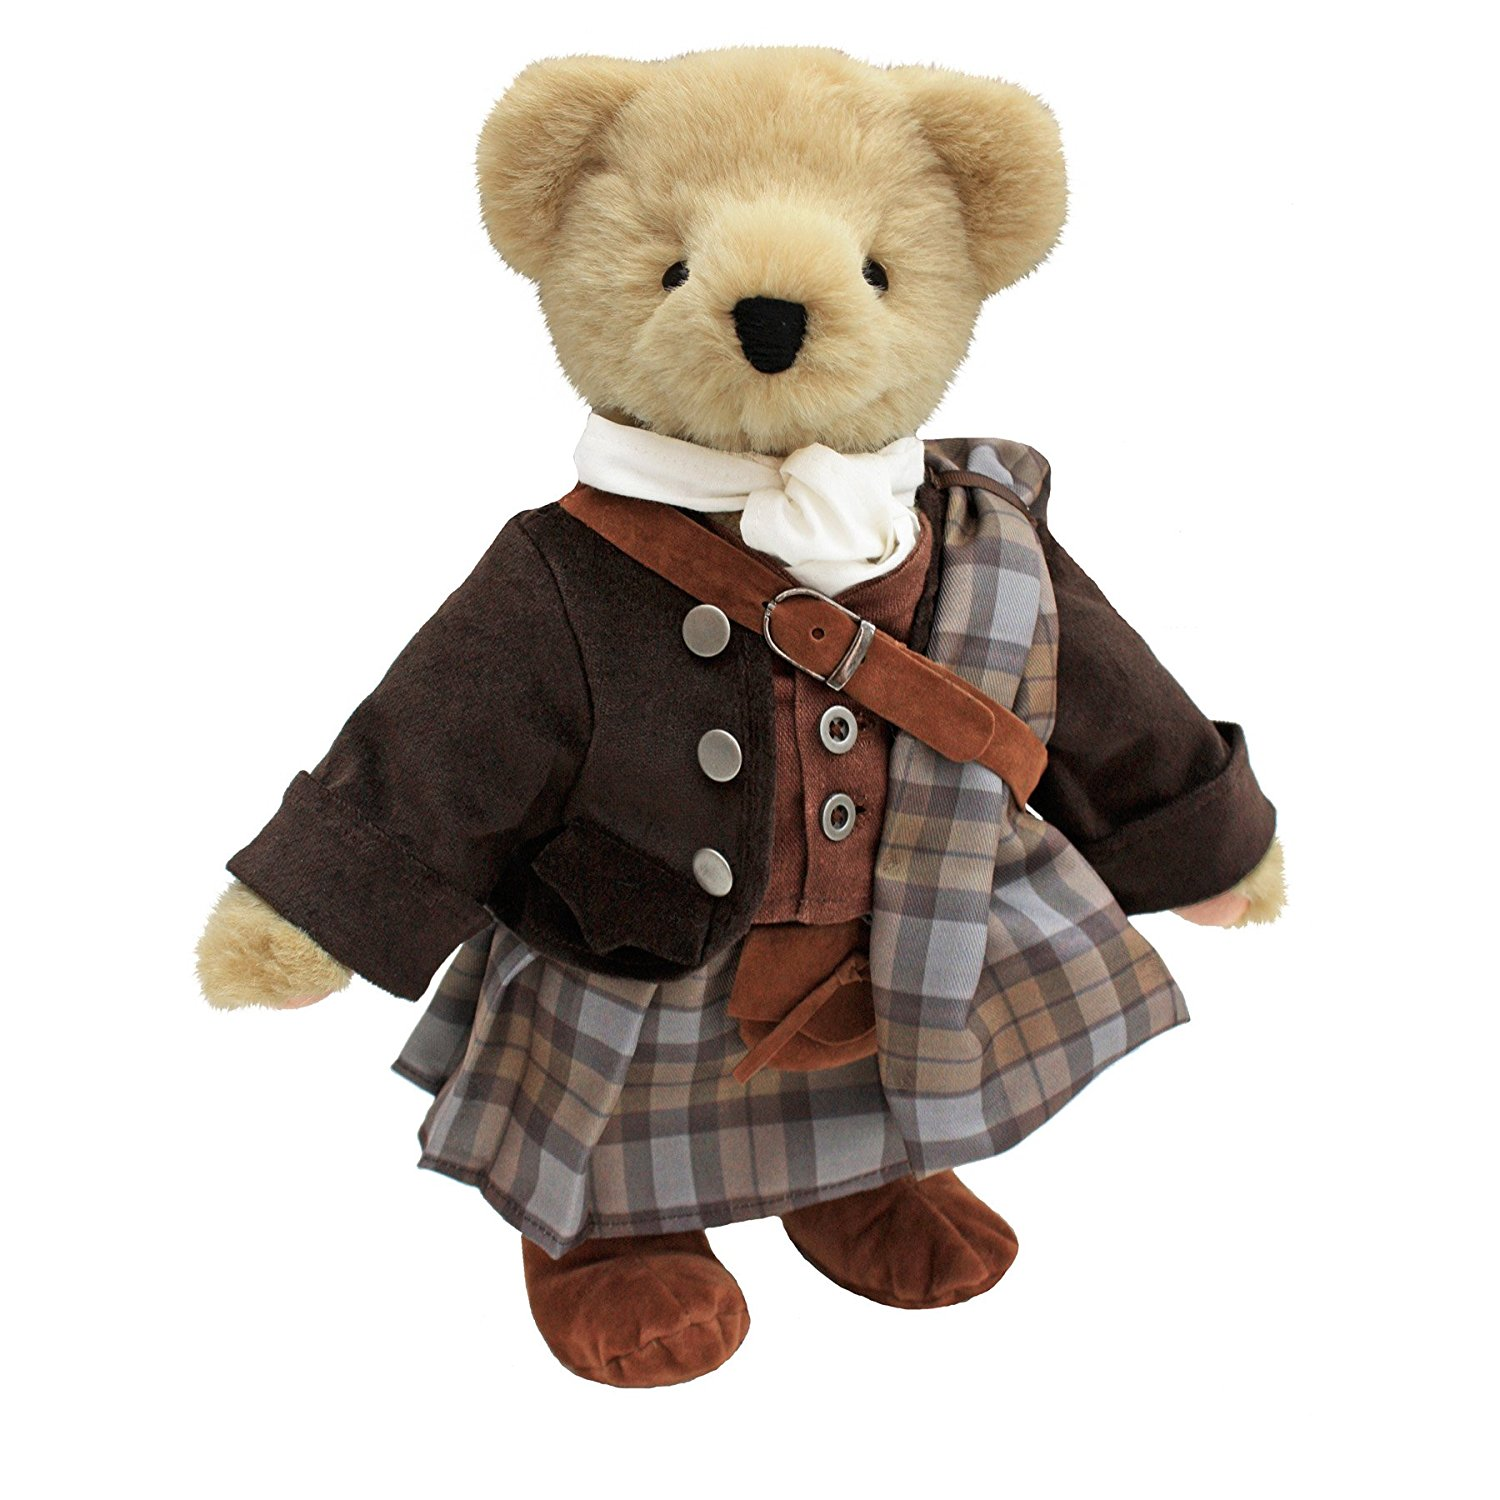 North American Bear Jamie Fraser Outlander Teddy Bear Collection by